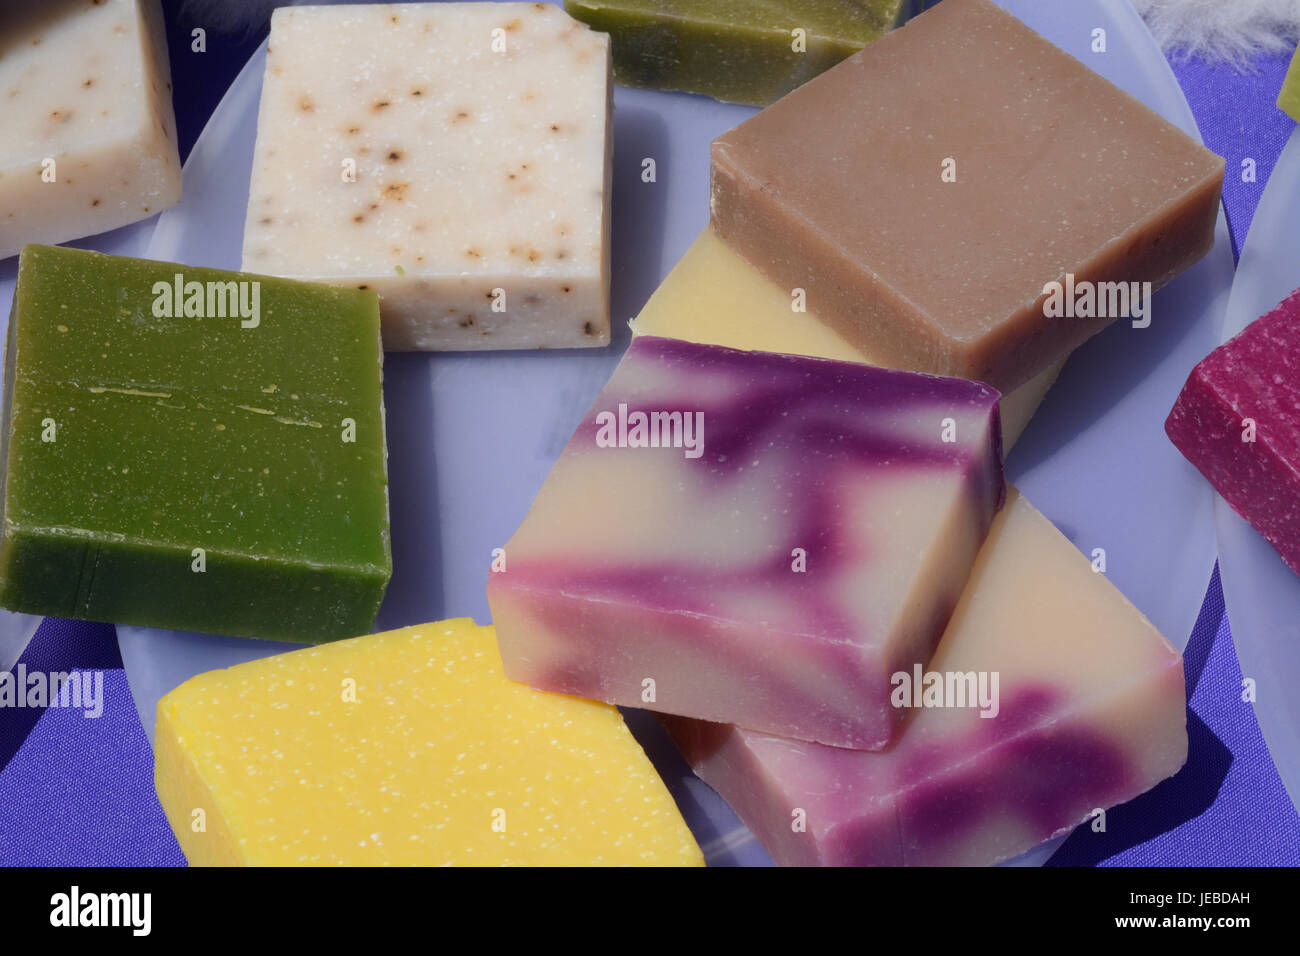 Colorful handmade beeswax soap squares on plates - Stock Image